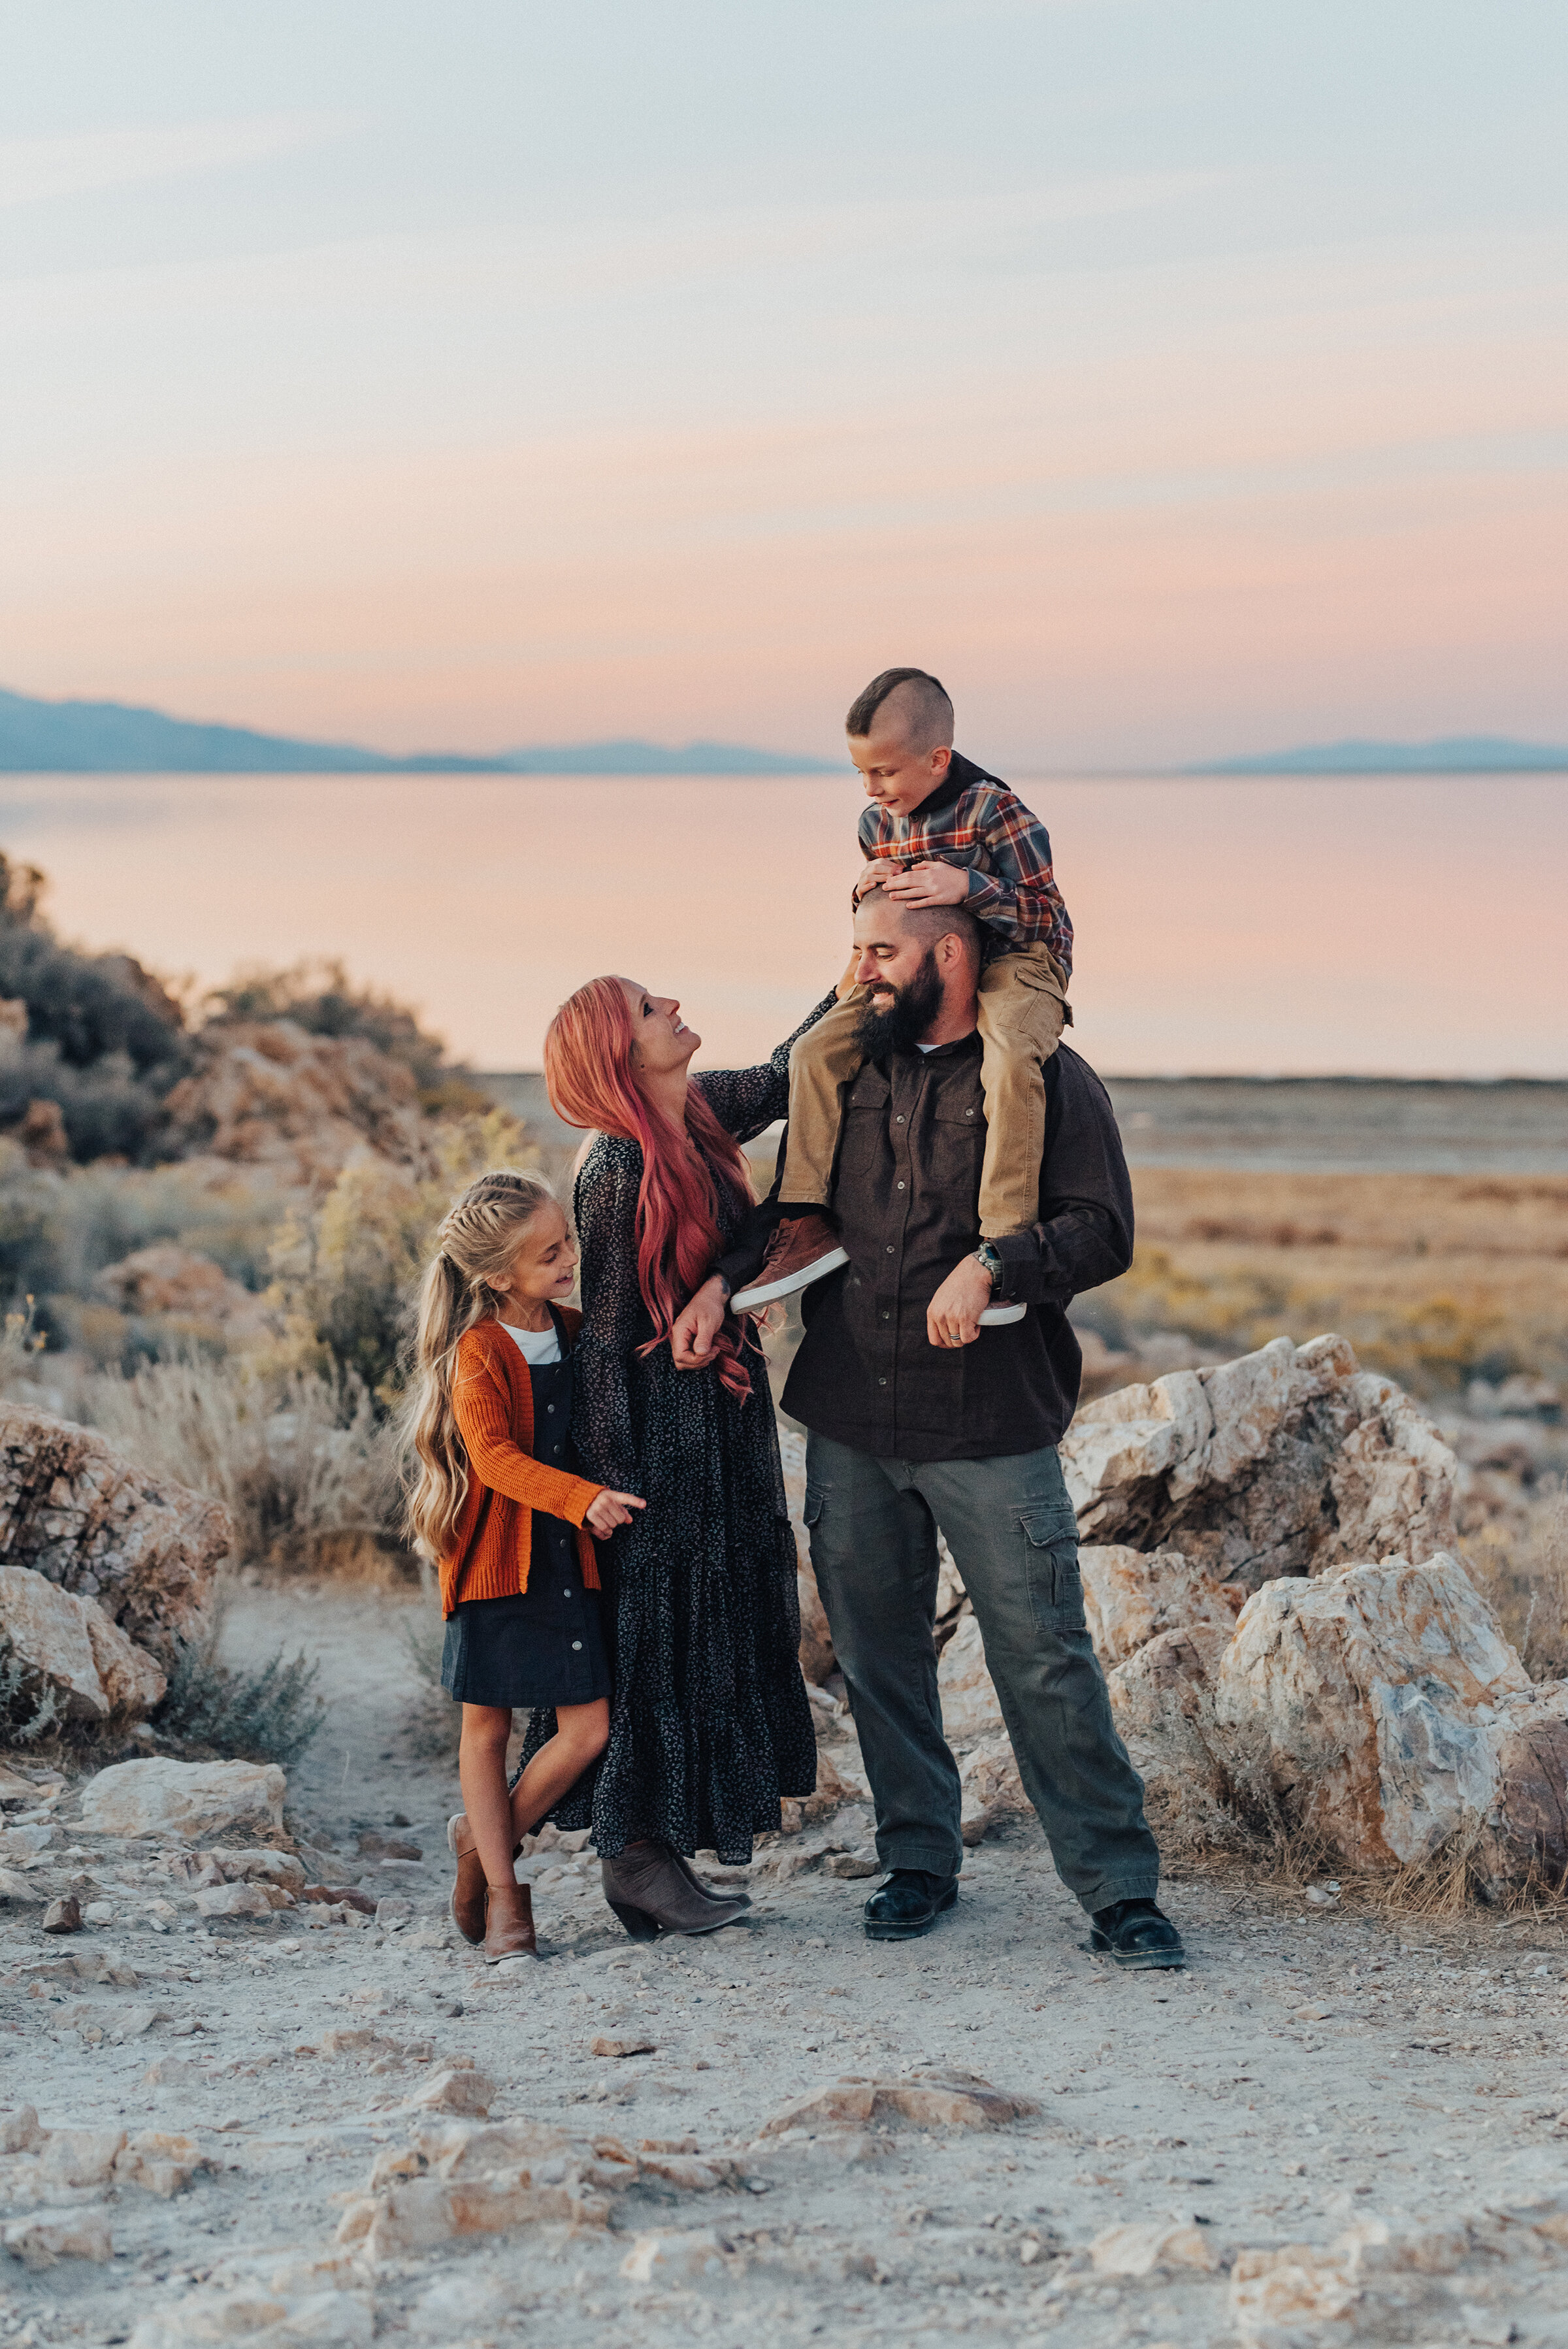 A mother and daughter look up at father and son in a beautiful warm fall family photo shoot by professional photographer Kristi Alyse Photography. Sunset goals family pose inspiration fun and playful family photo shoot SLC photographer Antelope Island couple and family goals unique family pose inspiration  #familypictures #utahphotographer #antelopeisland #outfitinspo #familypics #familyphotographer #pinkhair #saltlakecityphotog #slcfamilypictures